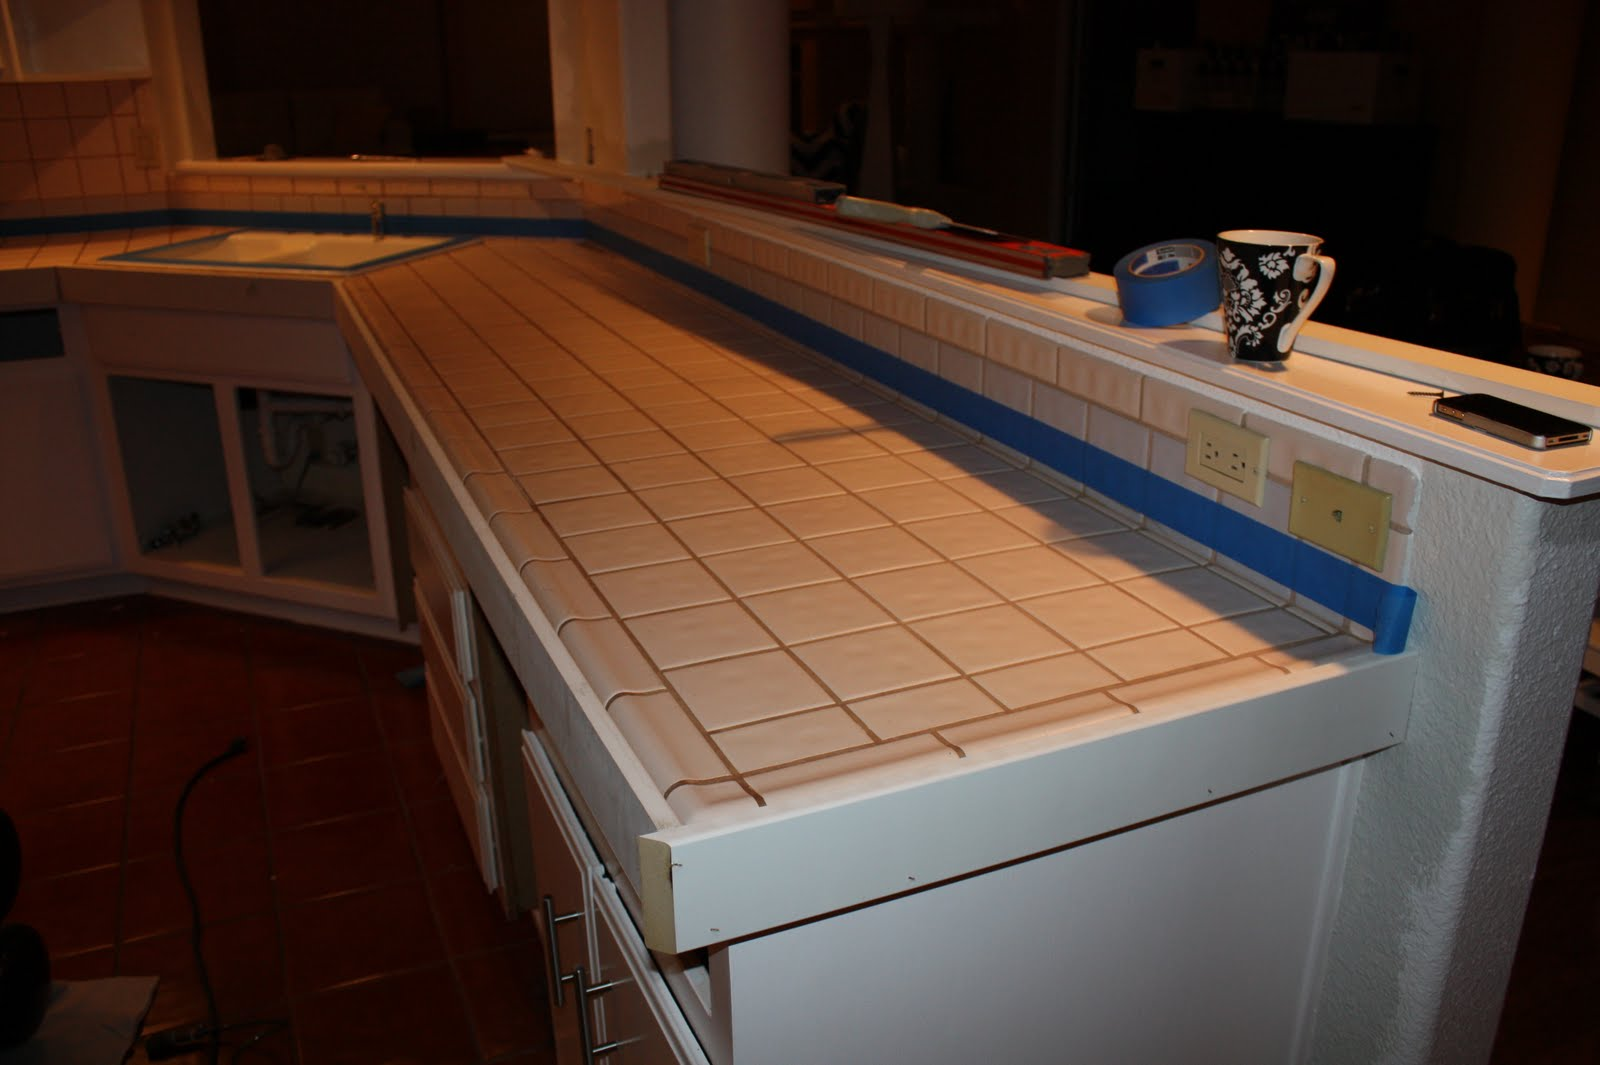 how to remove tile countertops replacing kitchen countertops Remodelaholic Quick Install Of Concrete Countertops Kitchen